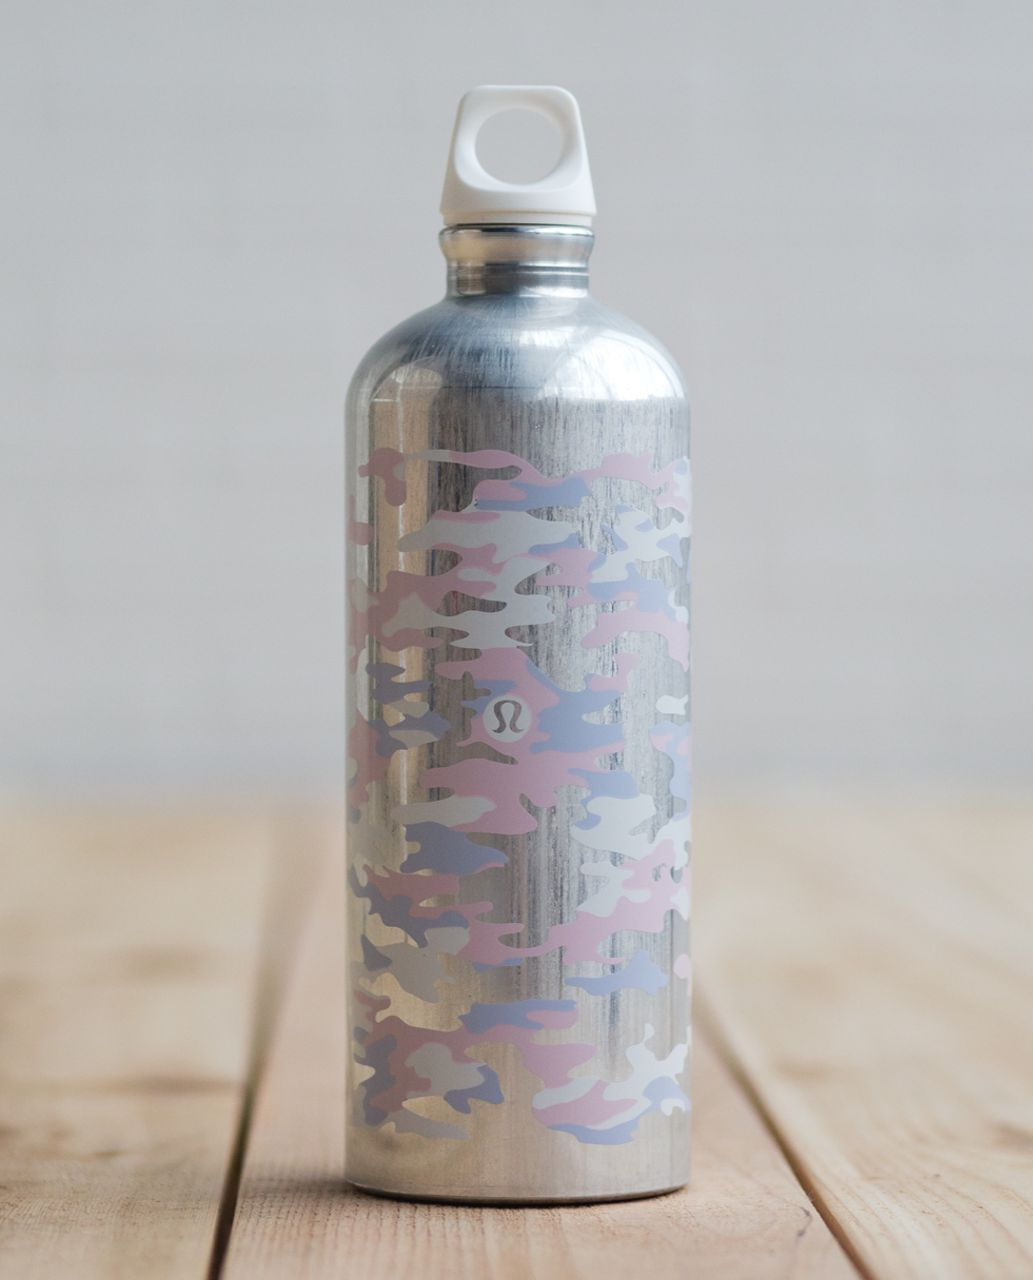 Lululemon Sigg 1L Water Bottle - Hide And Seek Camo Neutral Blush Early Blue